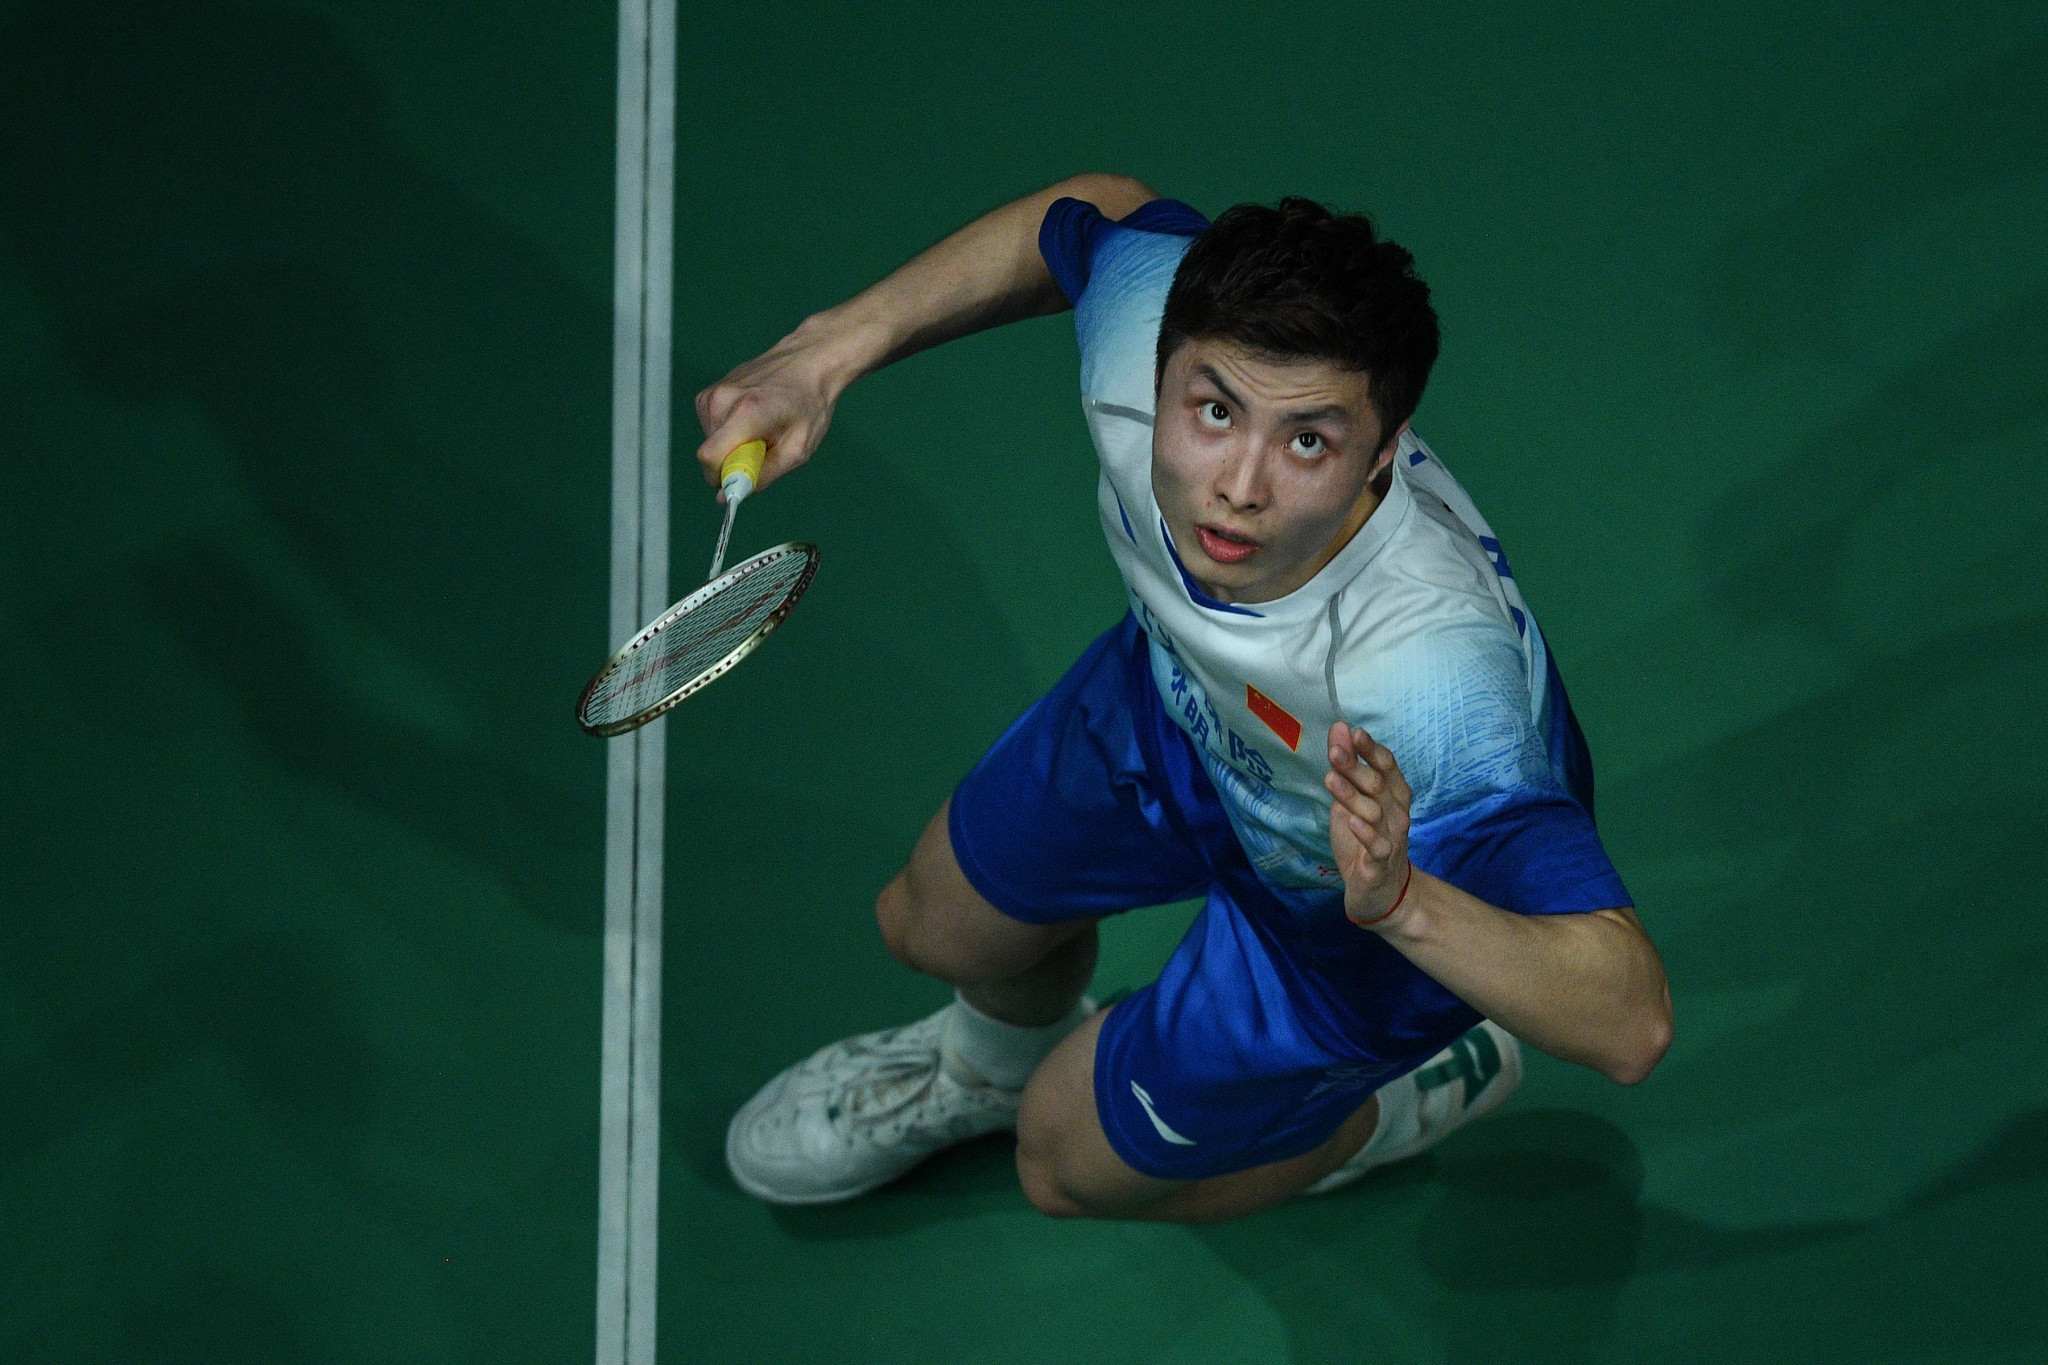 Second seed Shi Yuqi of China remains on course to win the men's singles title ©Getty Images